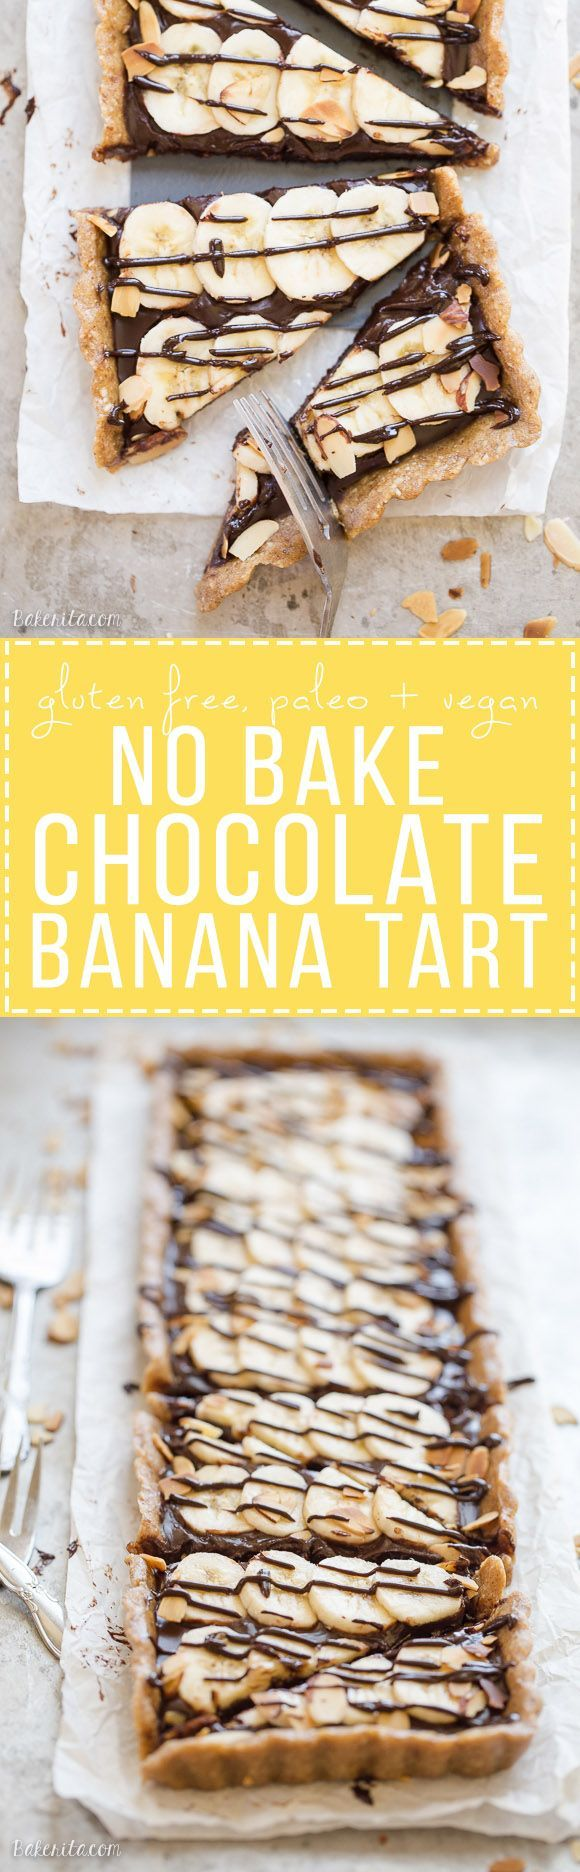 No-Bake Chocolate Banana Tart (Gluten Free, Paleo + Vegan)